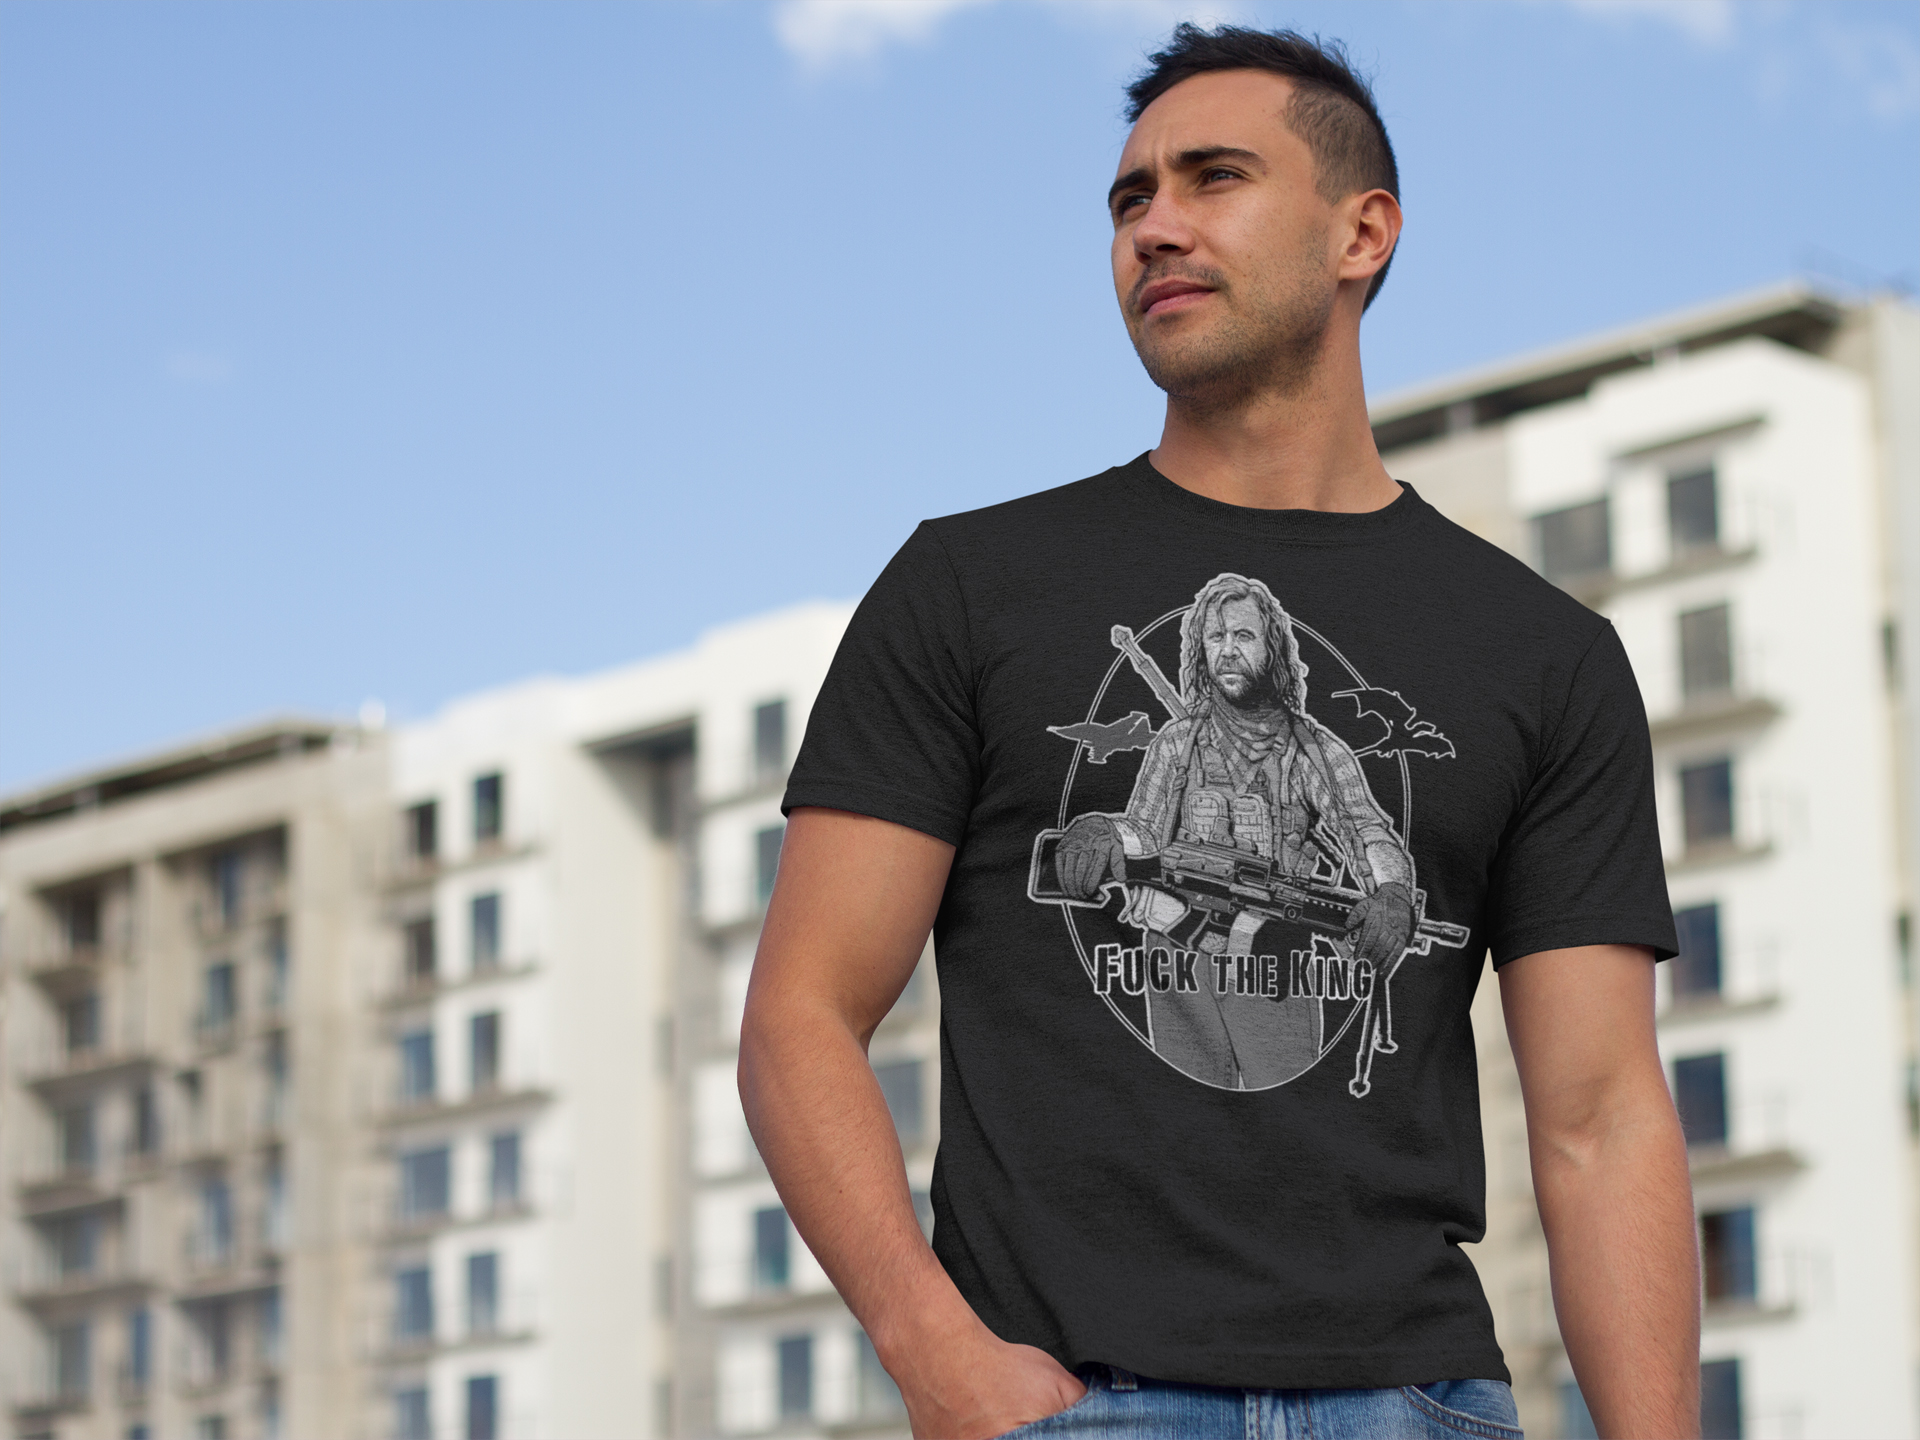 The Hound T-Shirt Game of Thrones tactical style